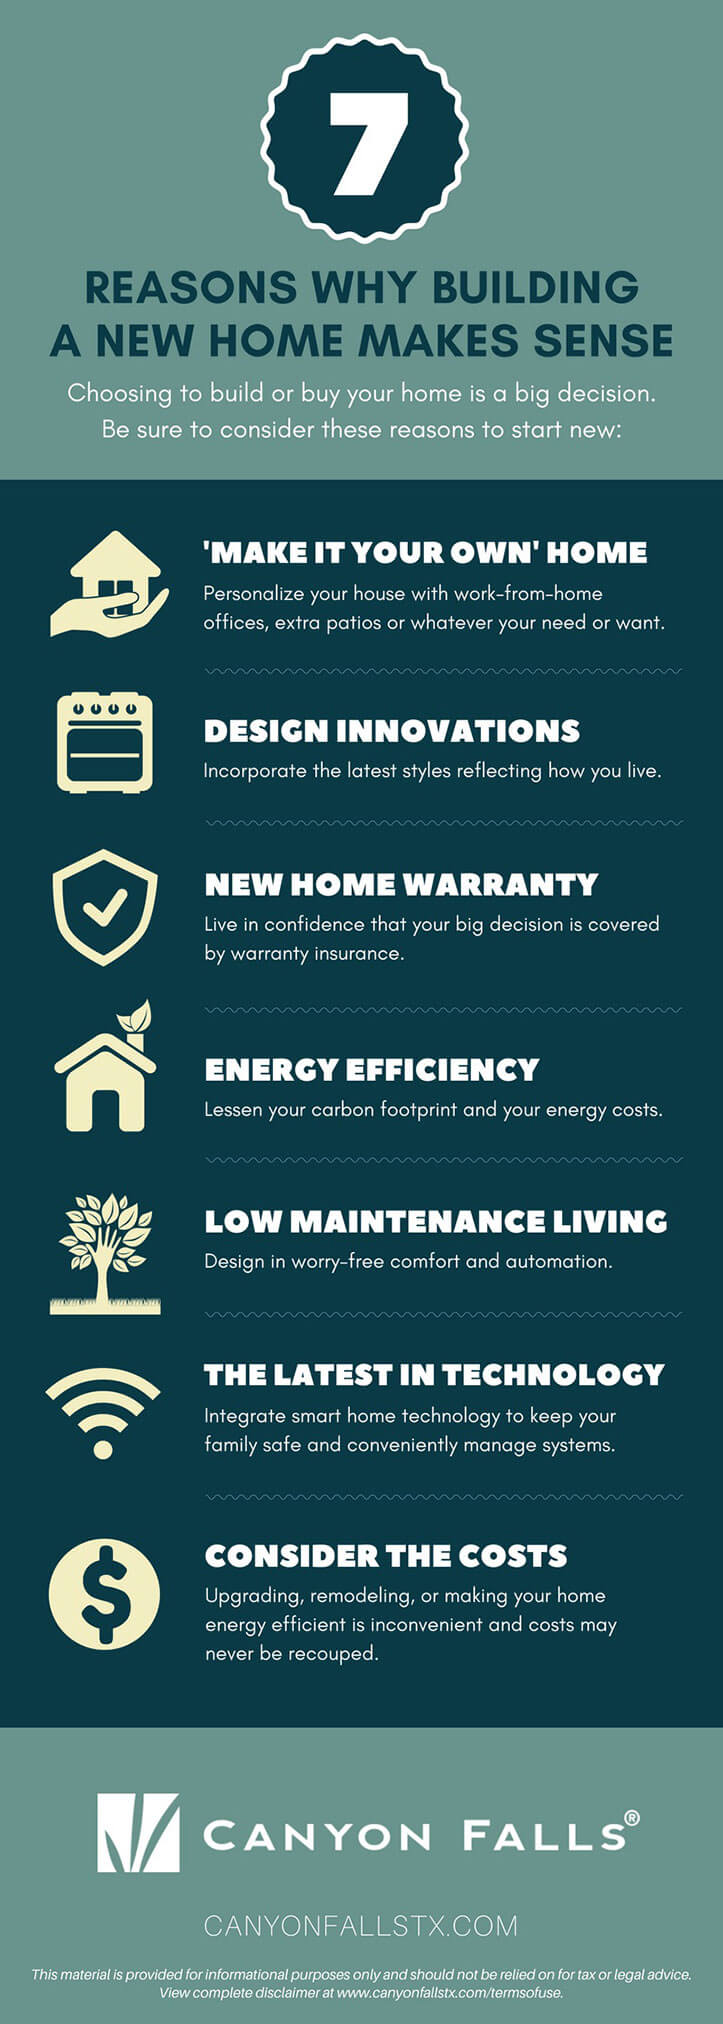 Infographic: 7 resons why building a new home makes sense